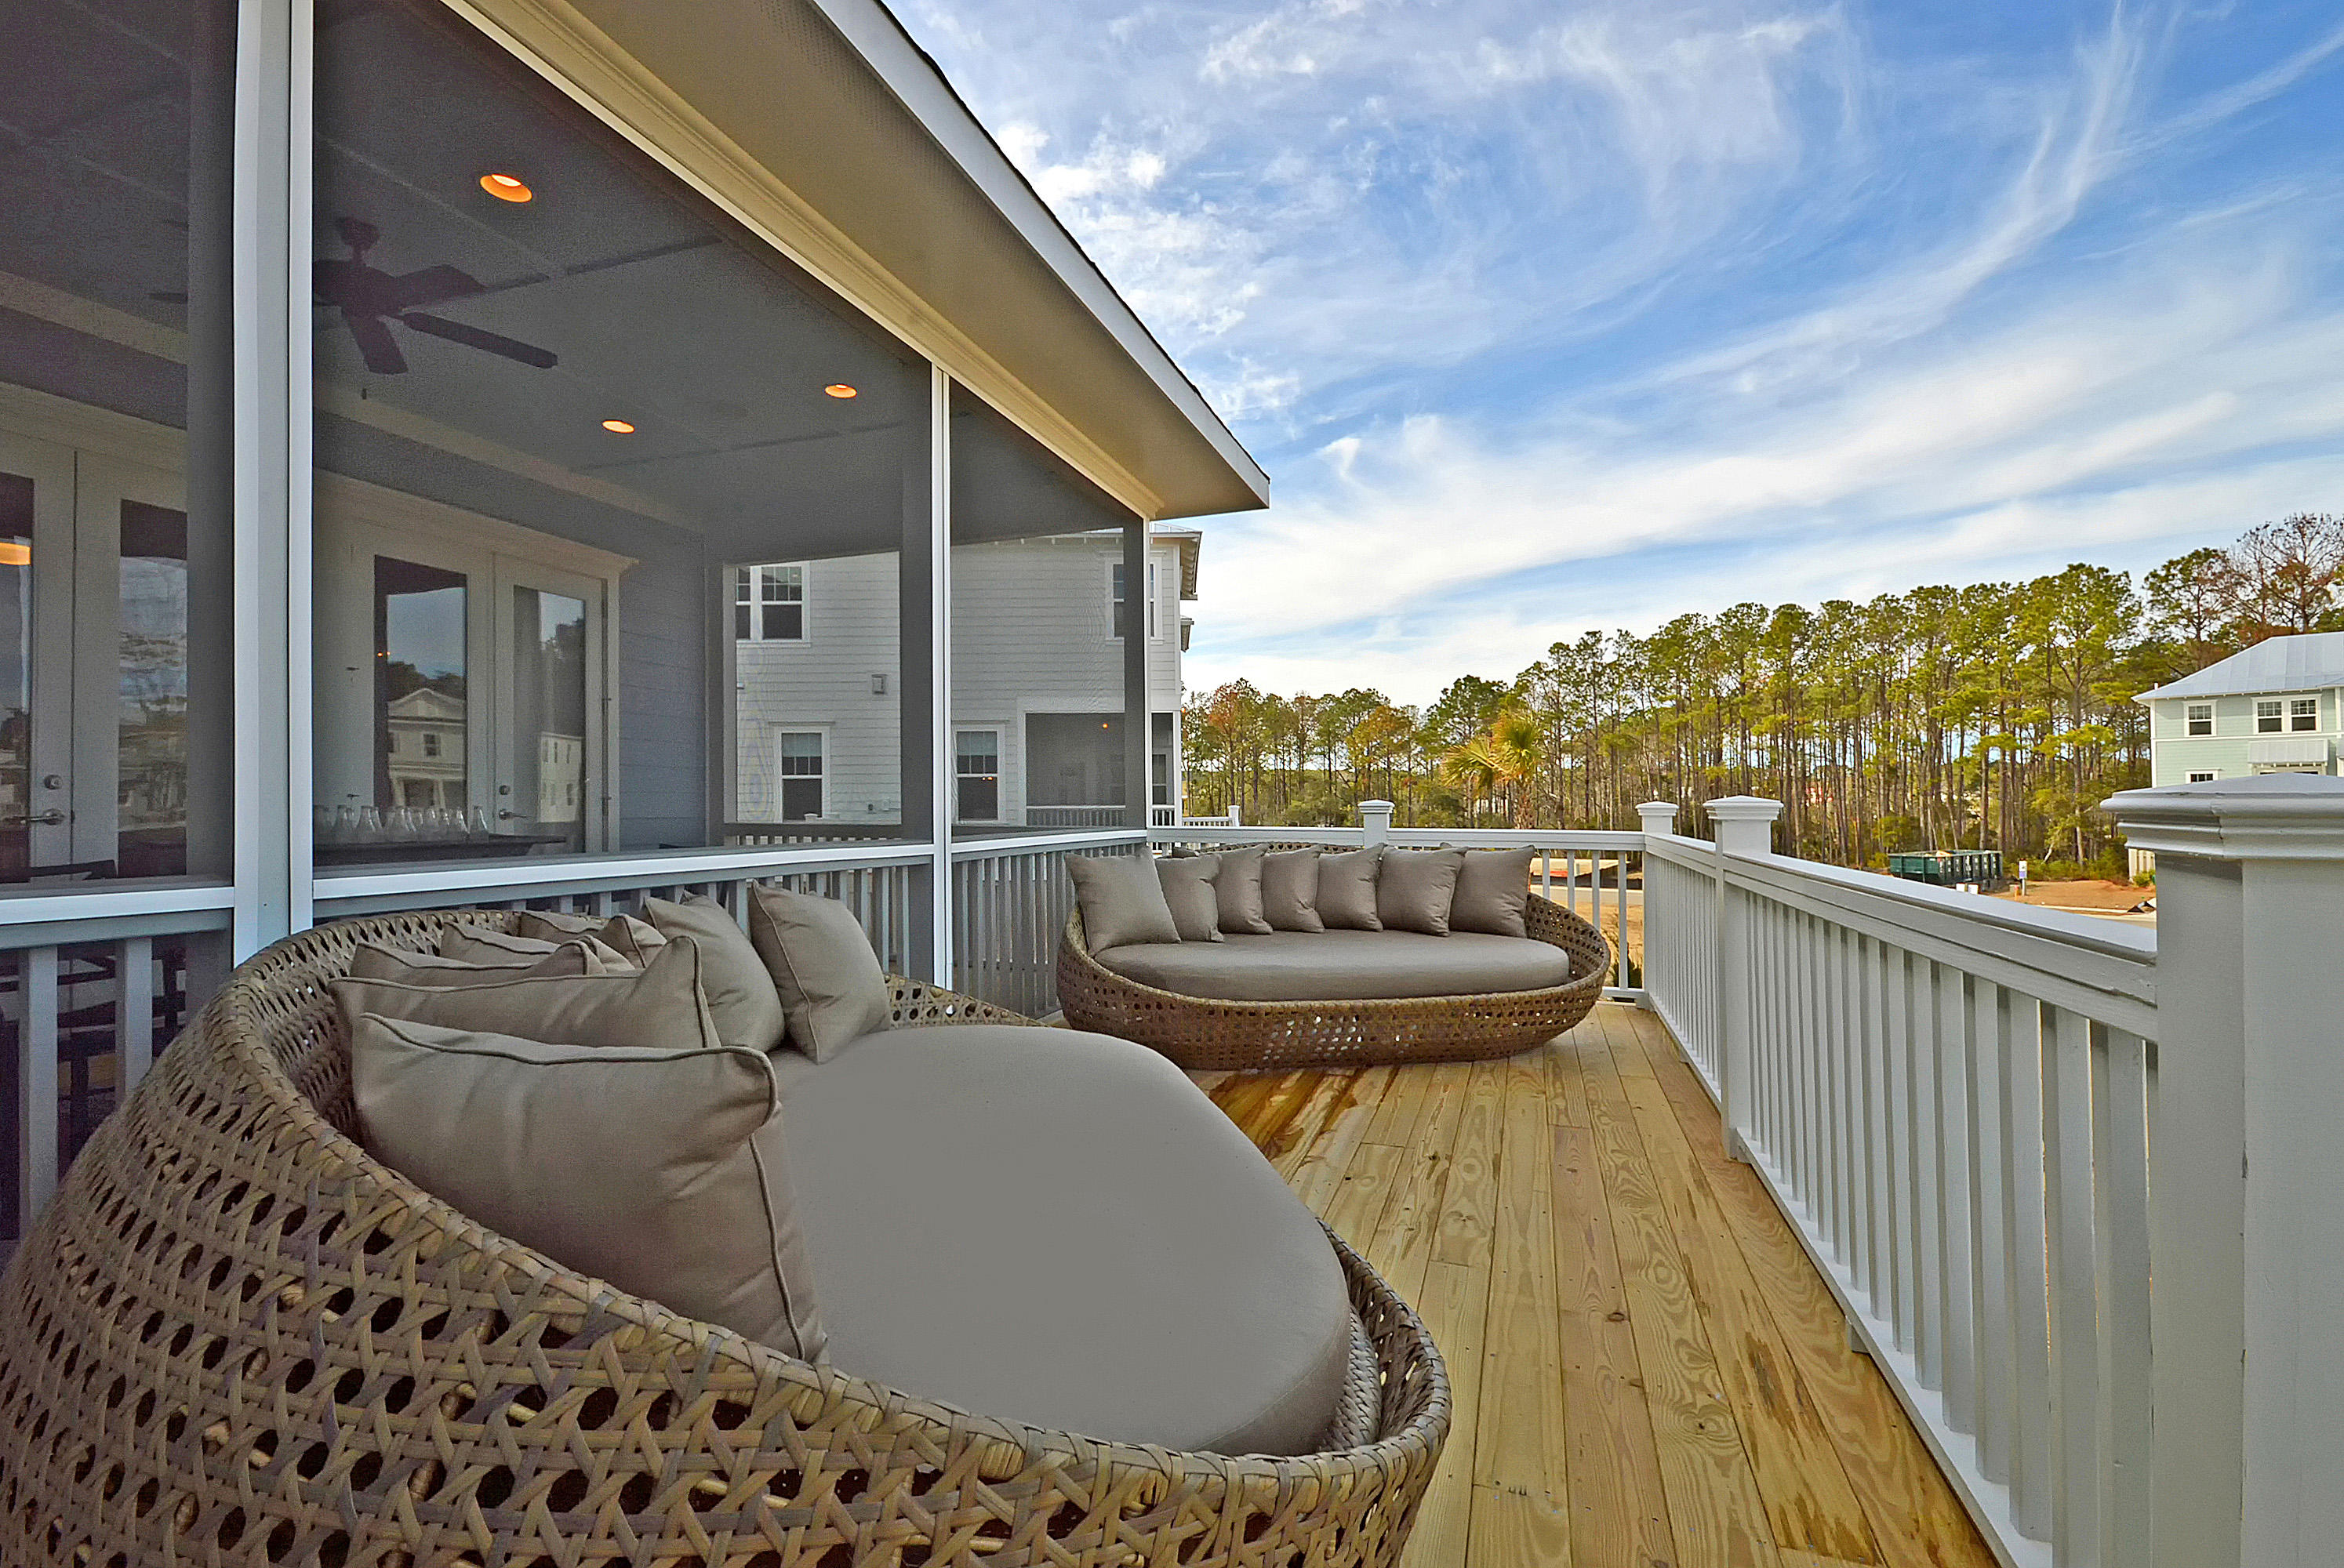 Stratton by the Sound Homes For Sale - 1435 Stratton, Mount Pleasant, SC - 31